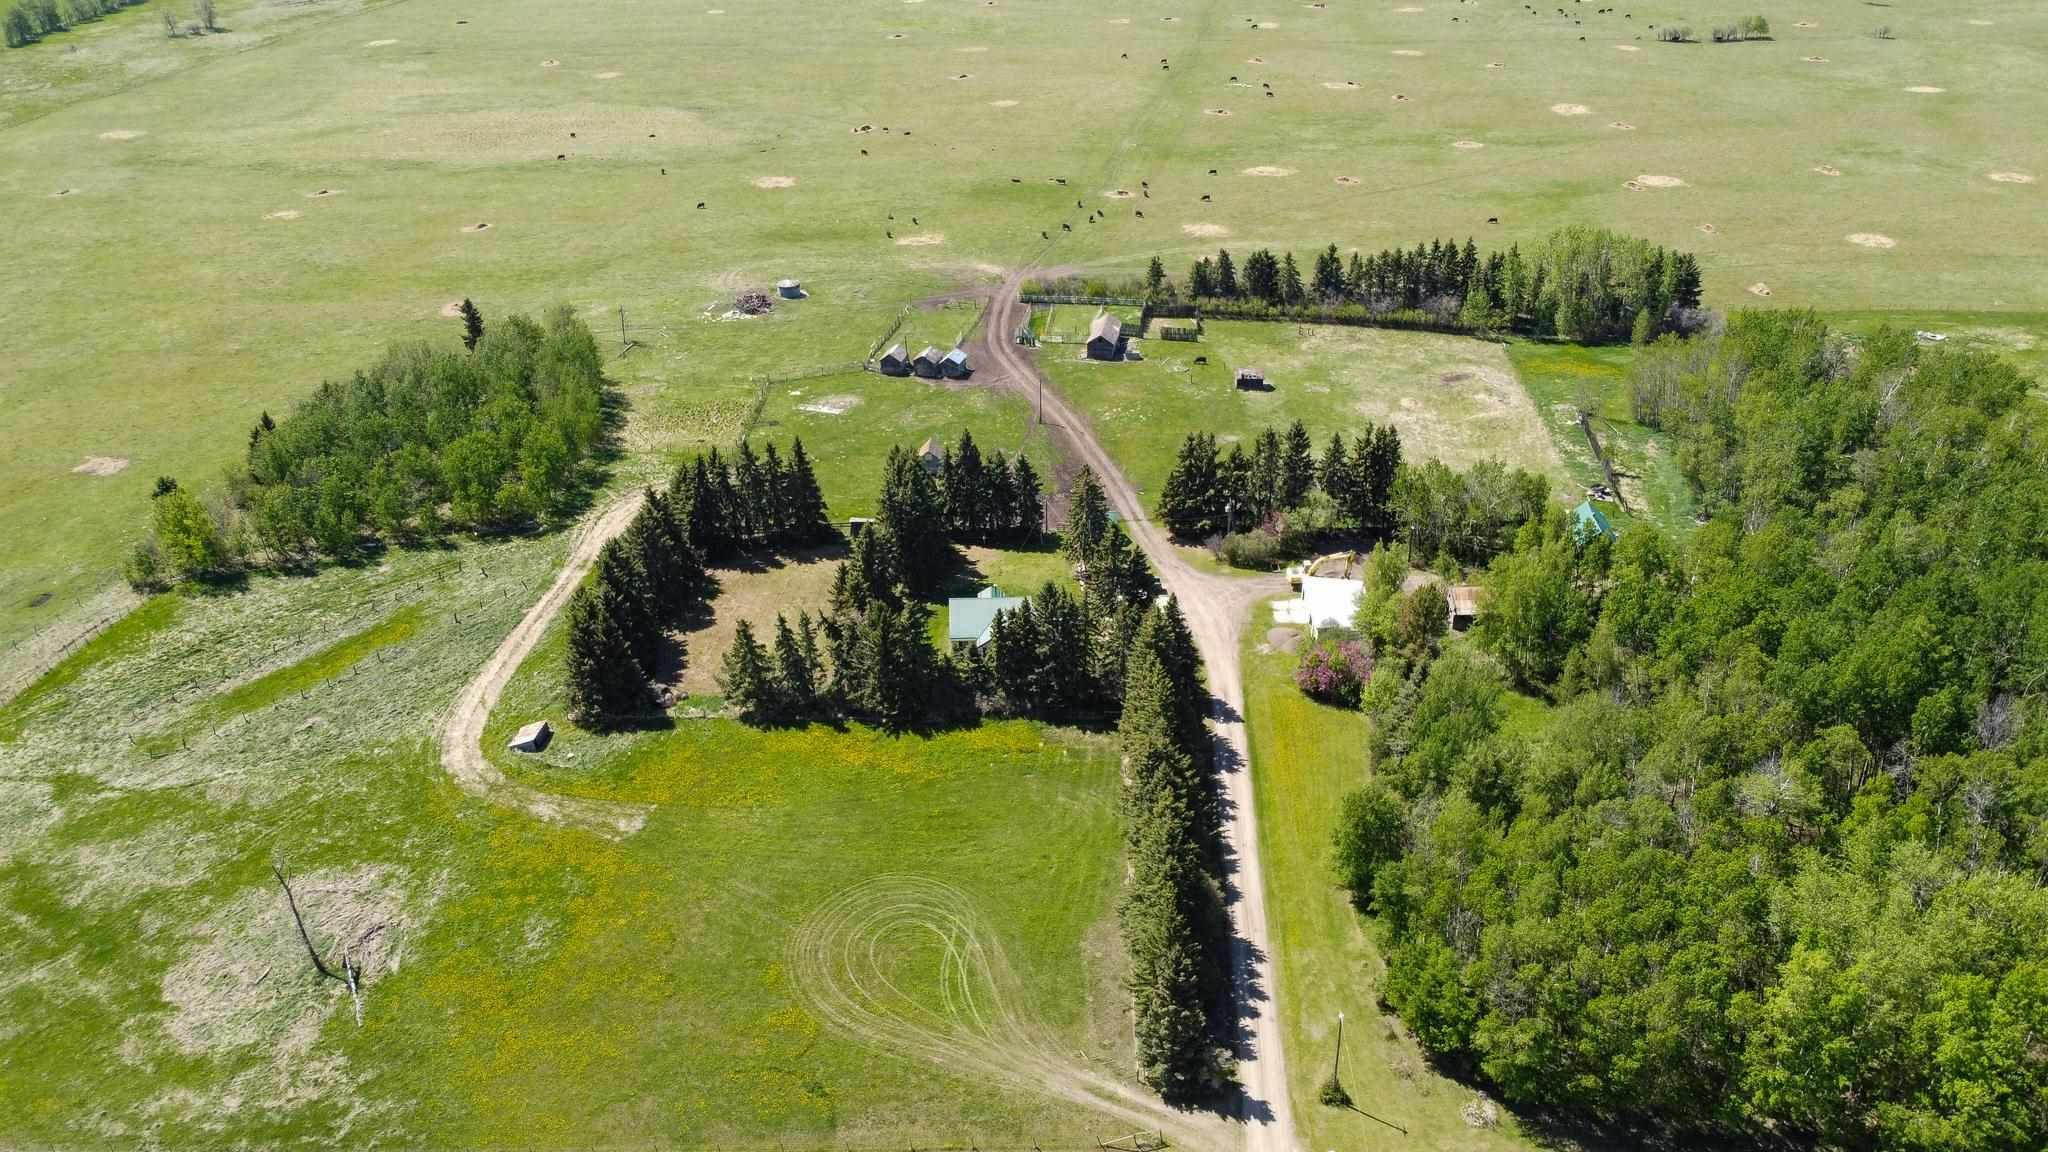 Main Photo: 454064 RGE RD 275: Rural Wetaskiwin County House for sale : MLS®# E4246862